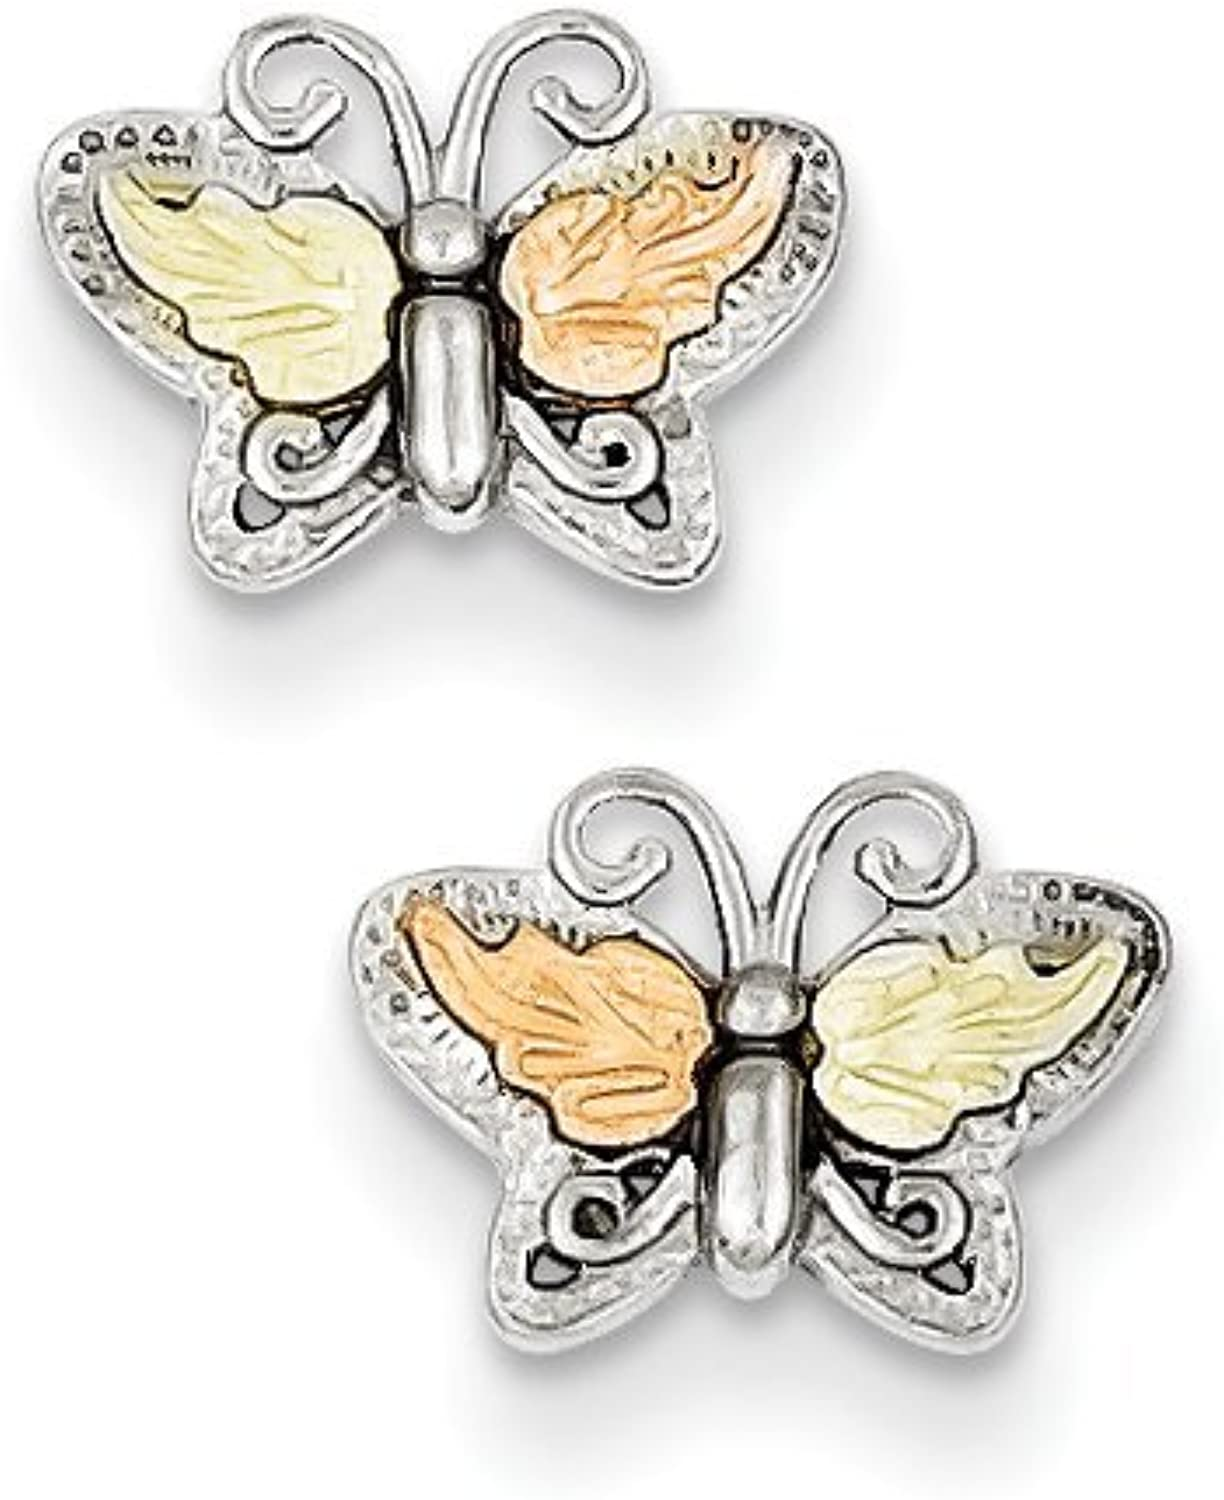 gold and Watches Sterling Silver & 12K Butterfly Post Earrings